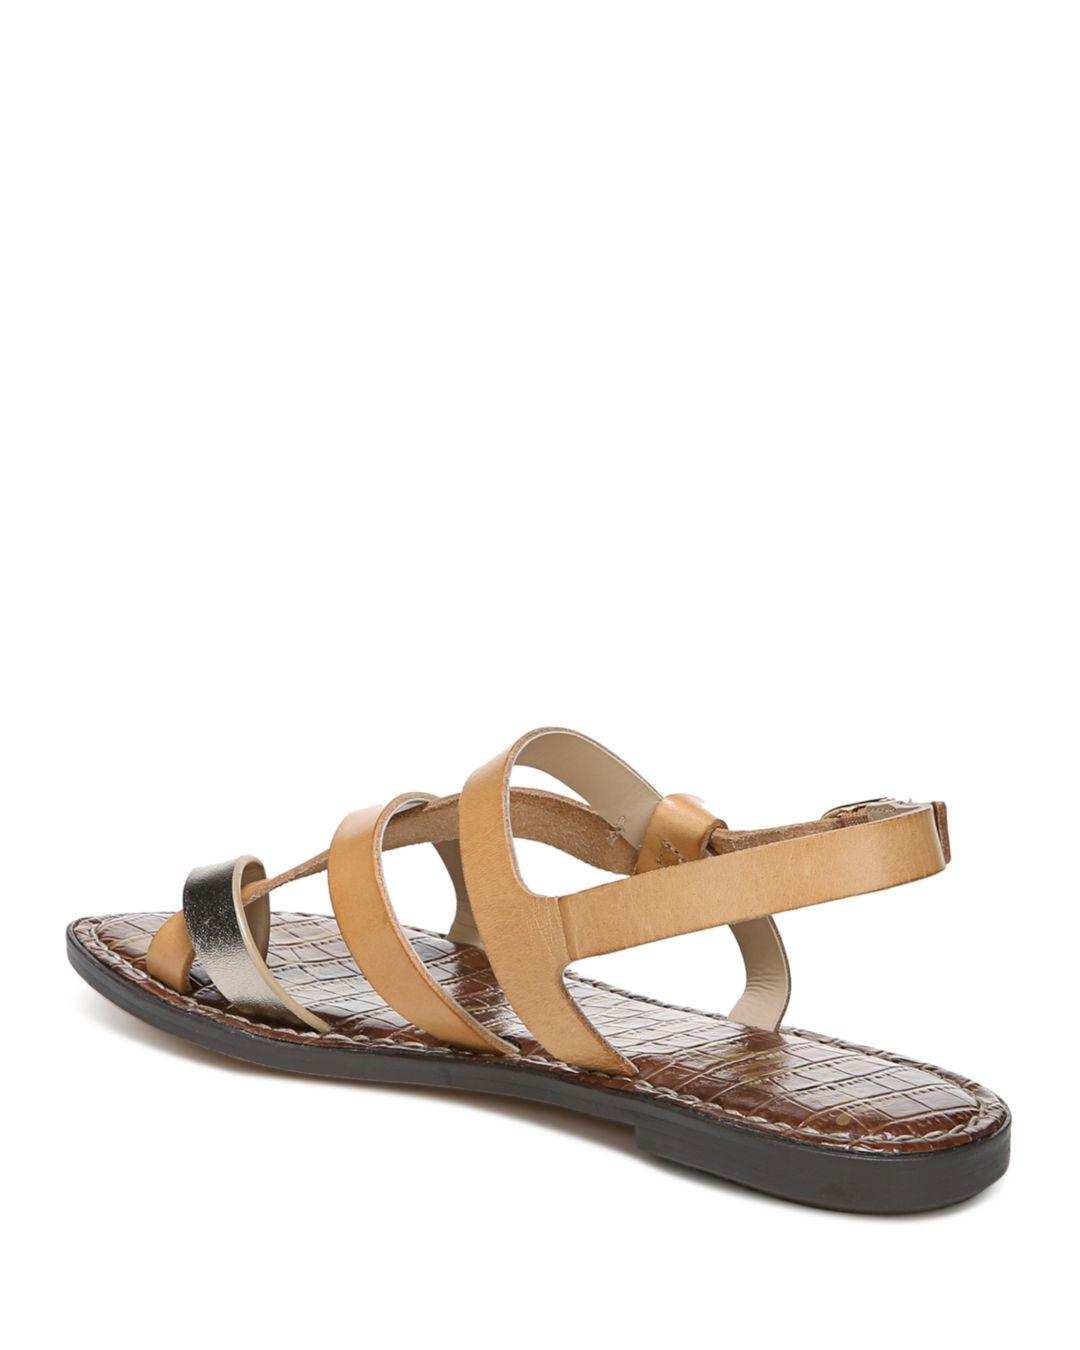 d9eae0357591 Sam Edelman - Multicolor Women s Gladis Strappy Knotted Sandals - Lyst.  View fullscreen